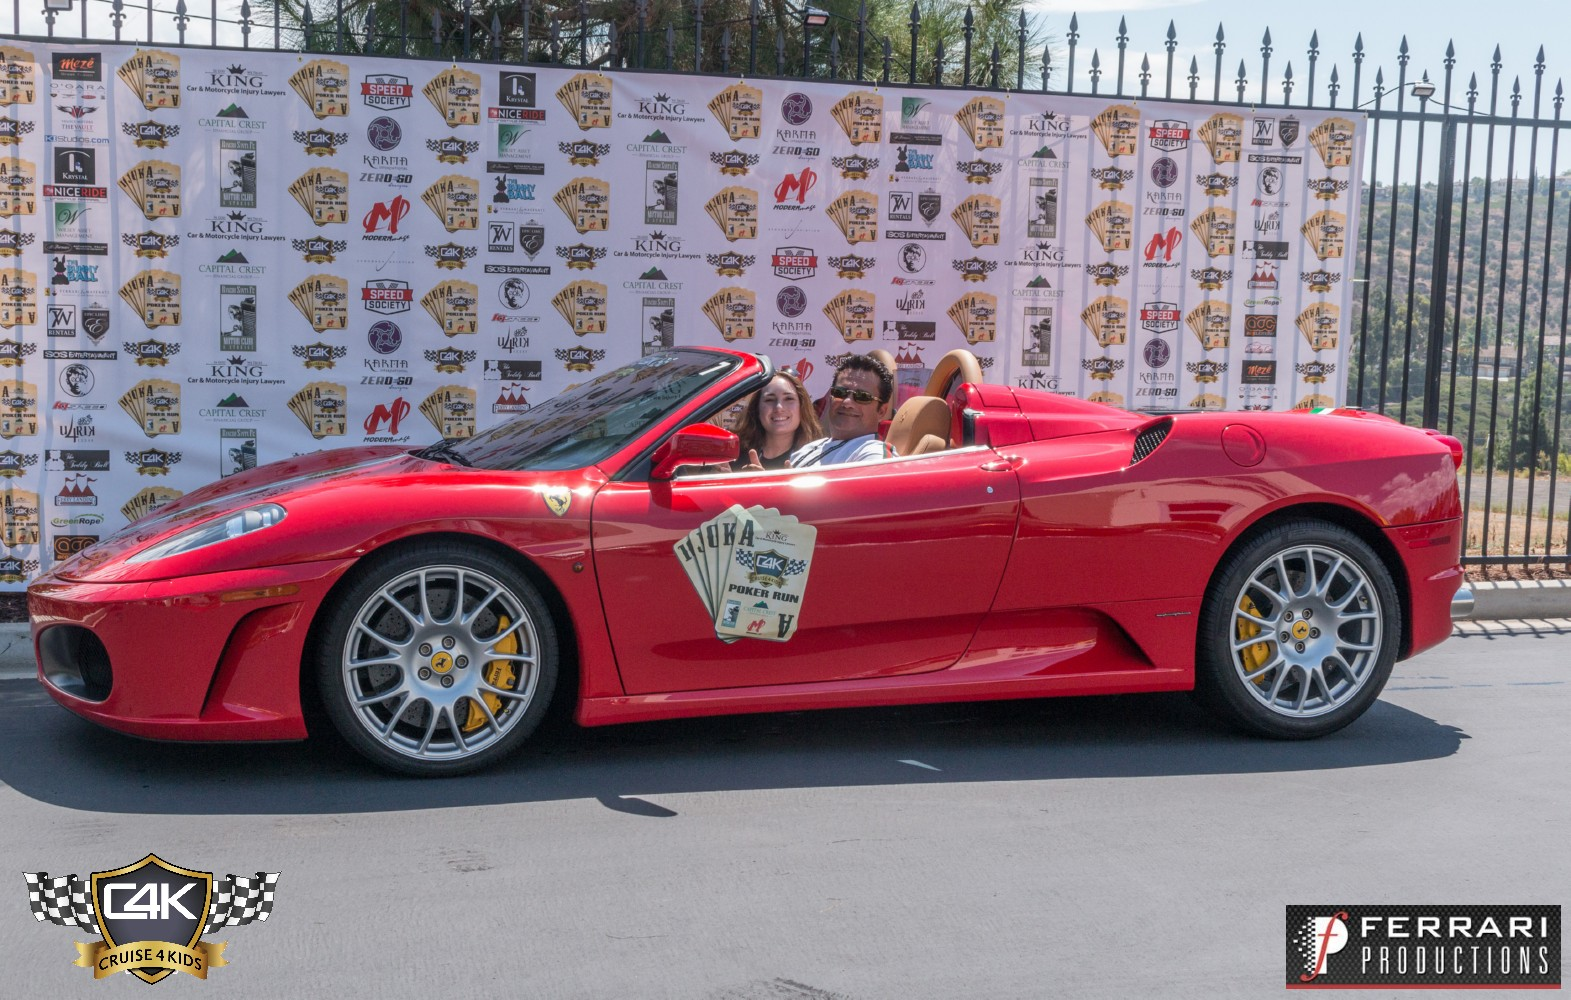 Ferrari-Productions-2017-C4K-Poker-Run-130.jpg